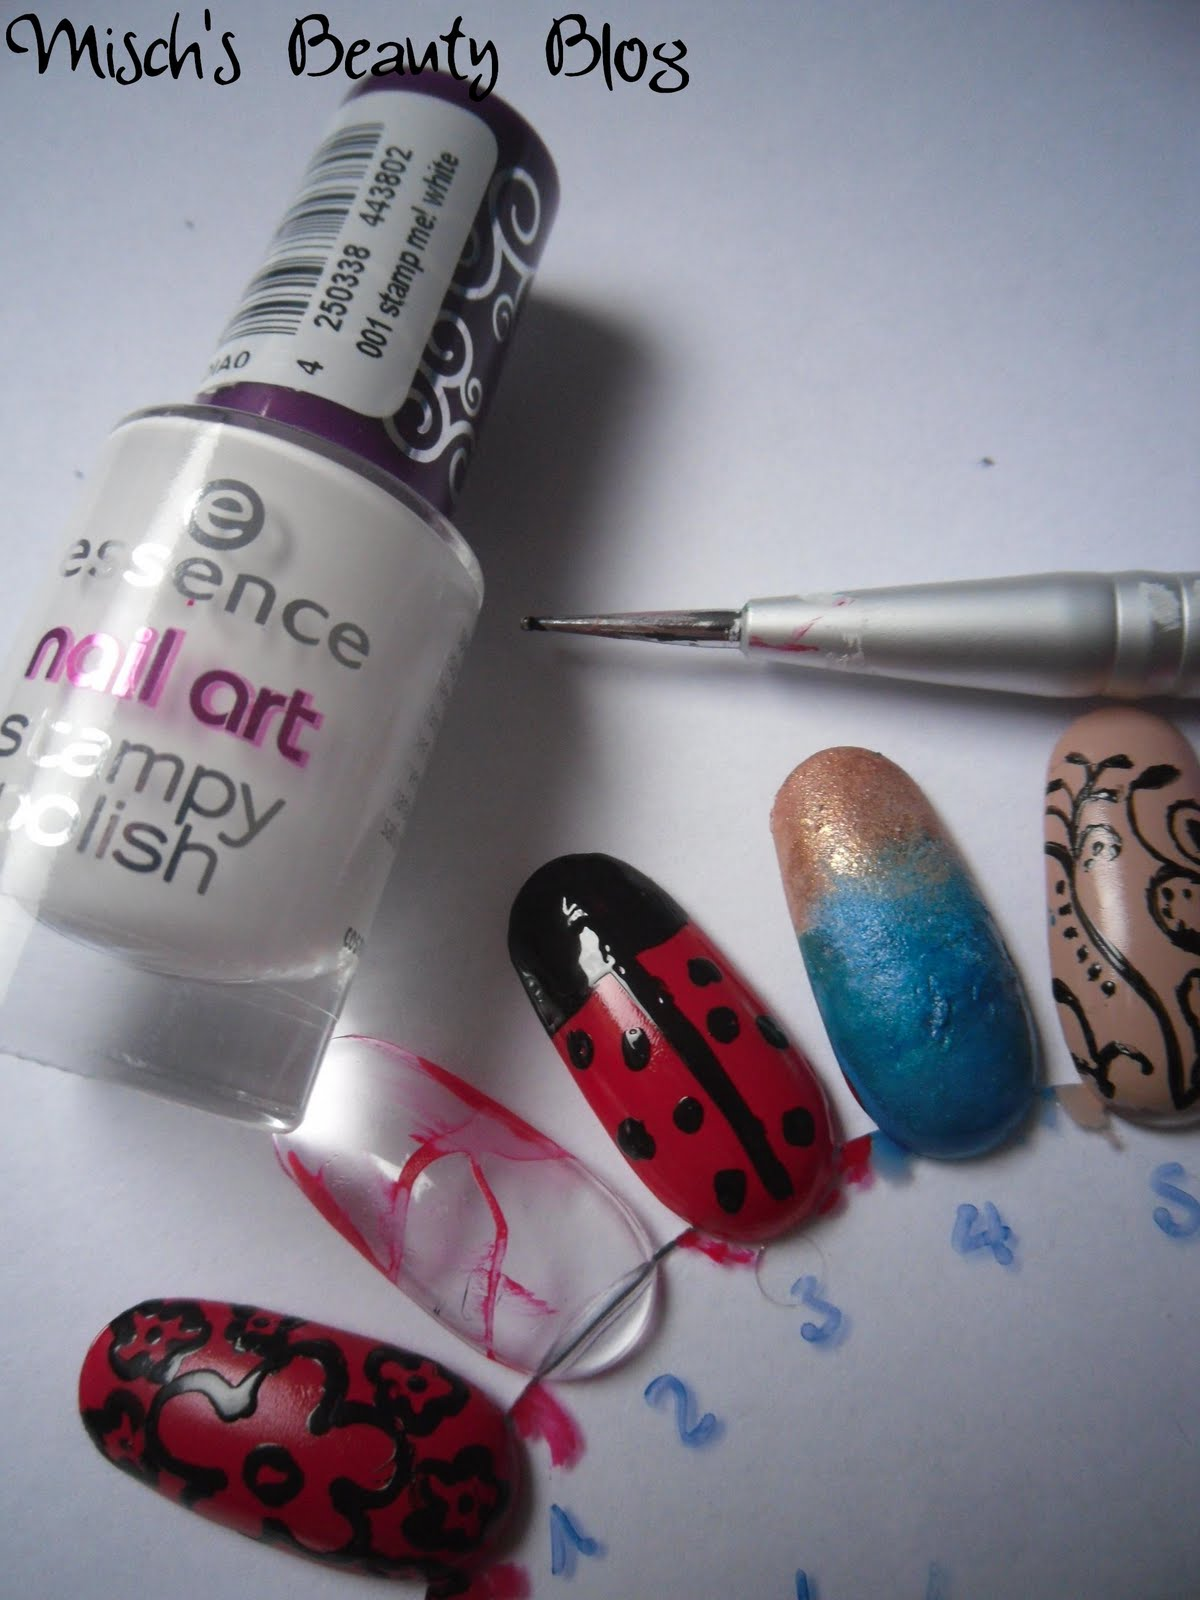 Misch S Beauty Blog Notd September 29th Fall Leaf Nail Art: Misch's Beauty Blog: Picture Tutorial: Ladybug Nail Art